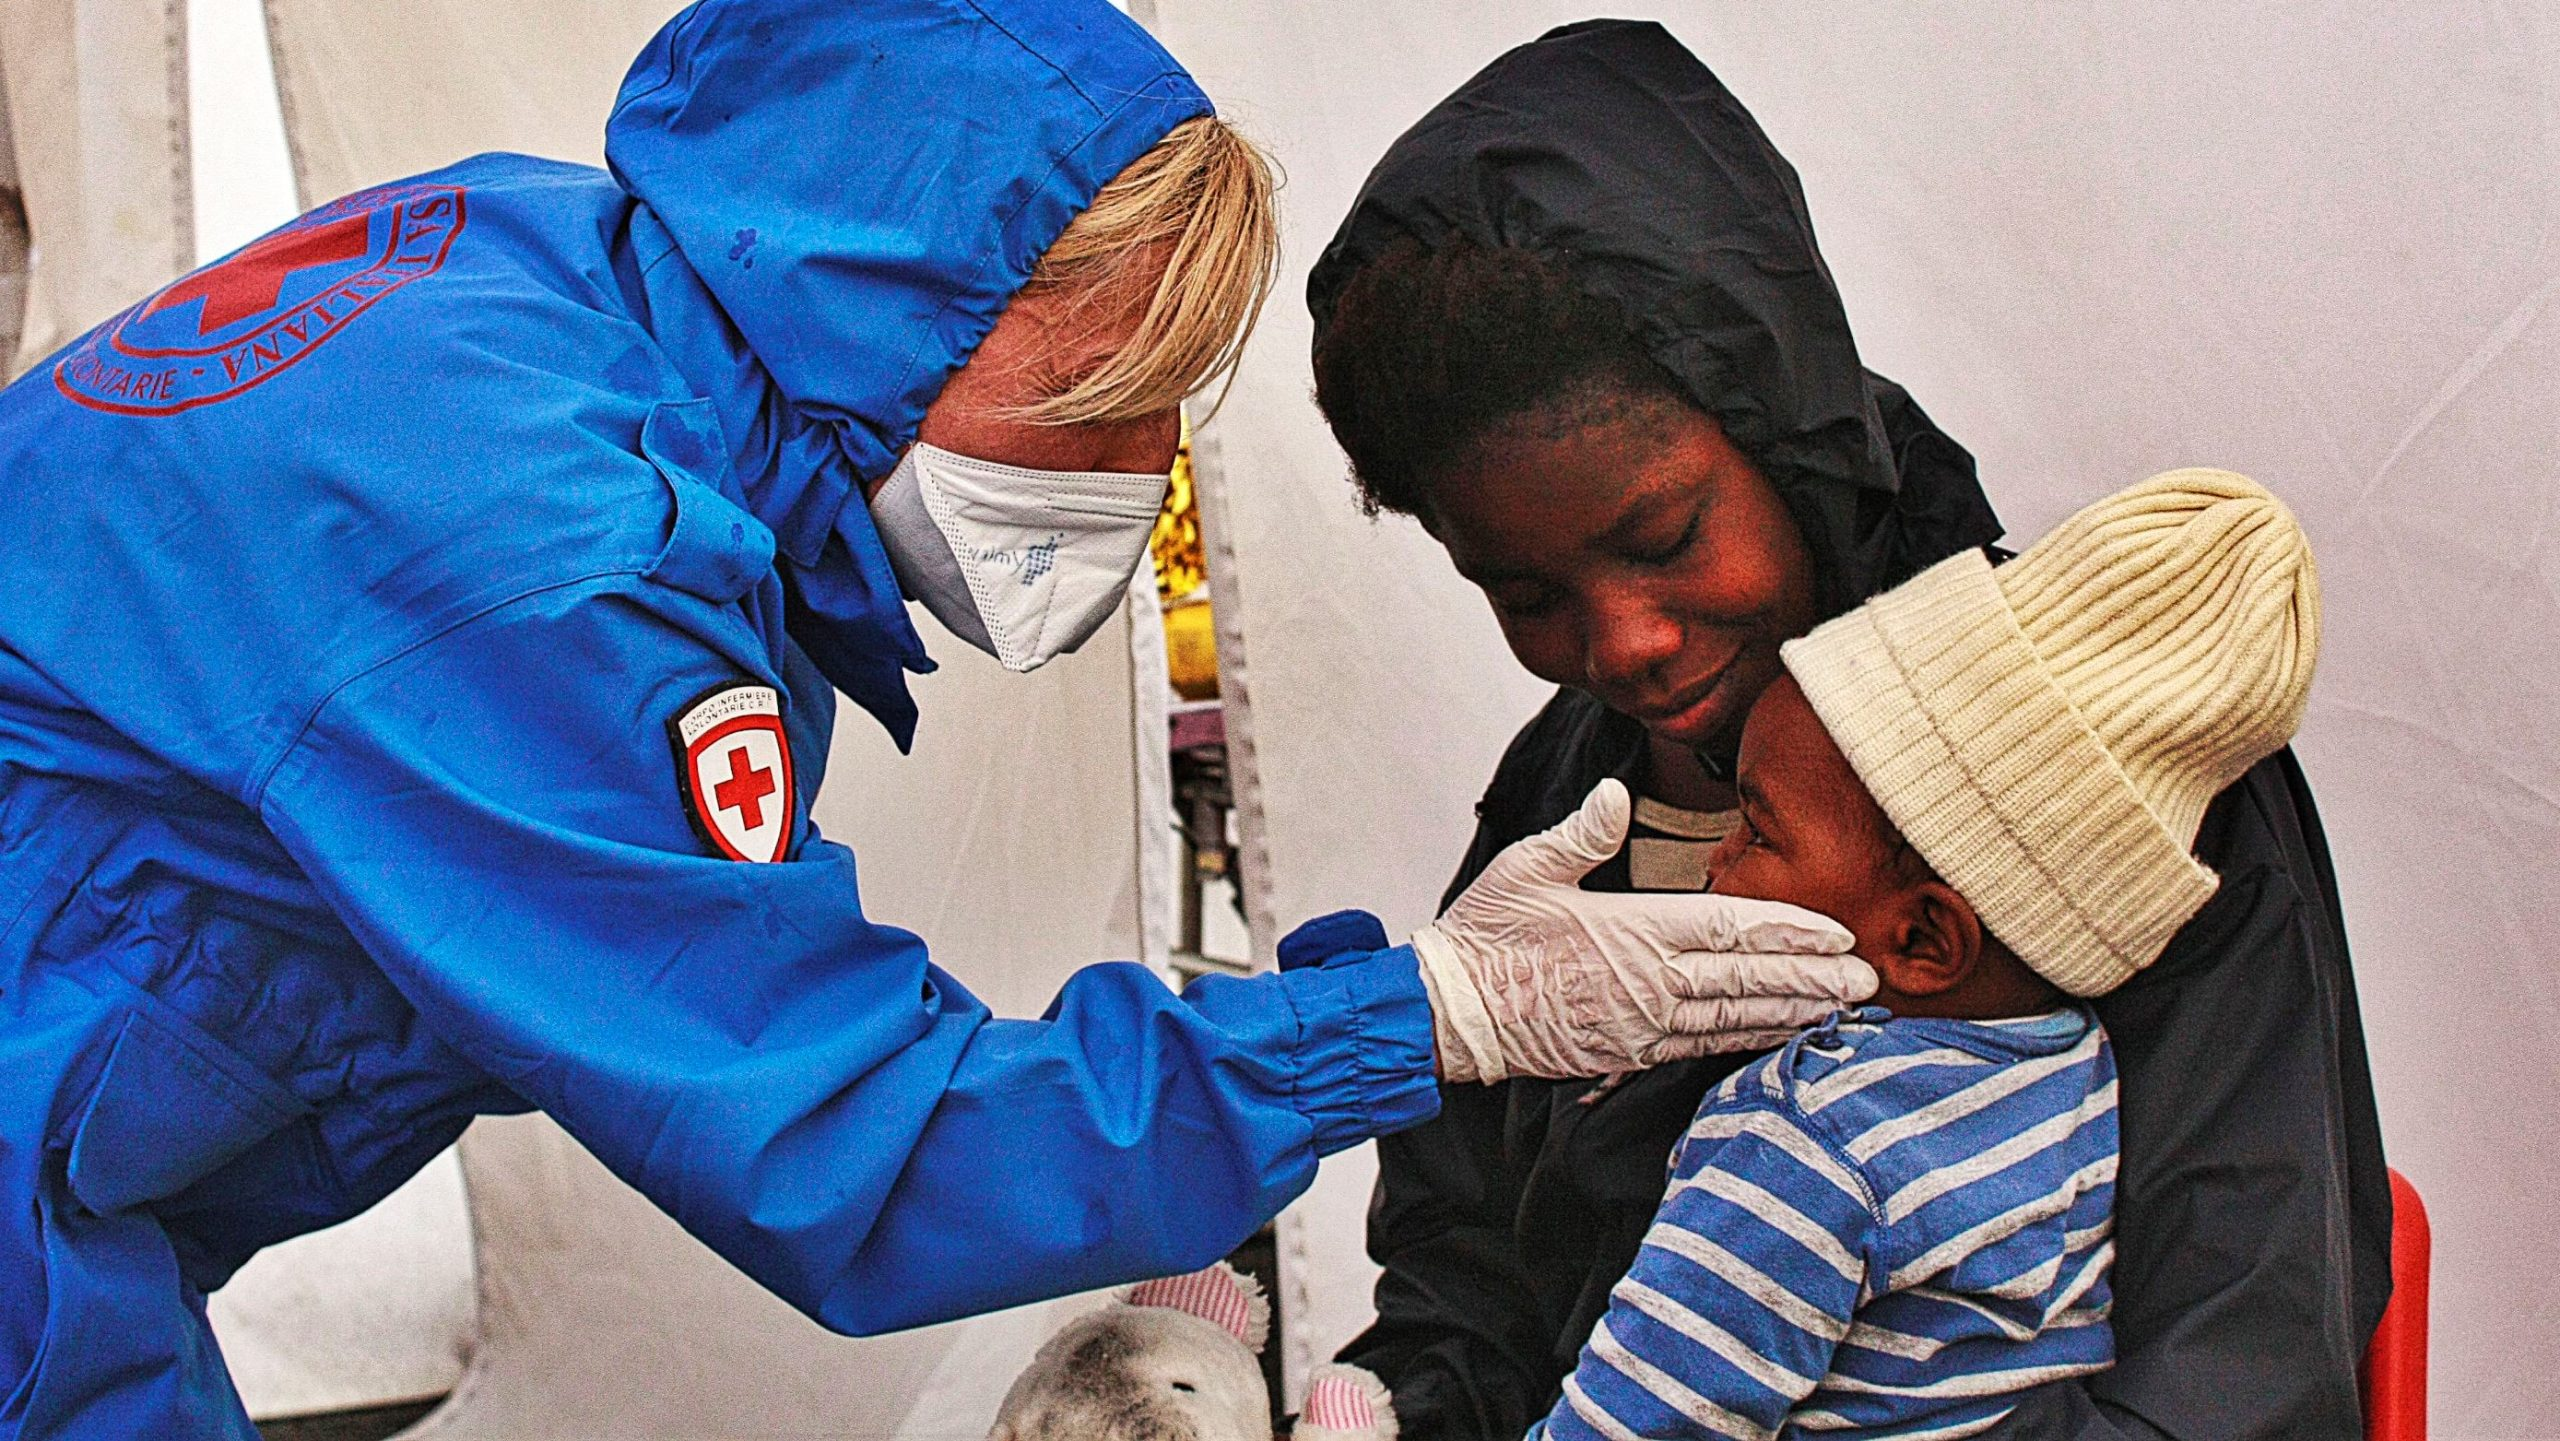 """""""From COVID-19 towards the future together"""": Access to the Vaccine for Everyone"""